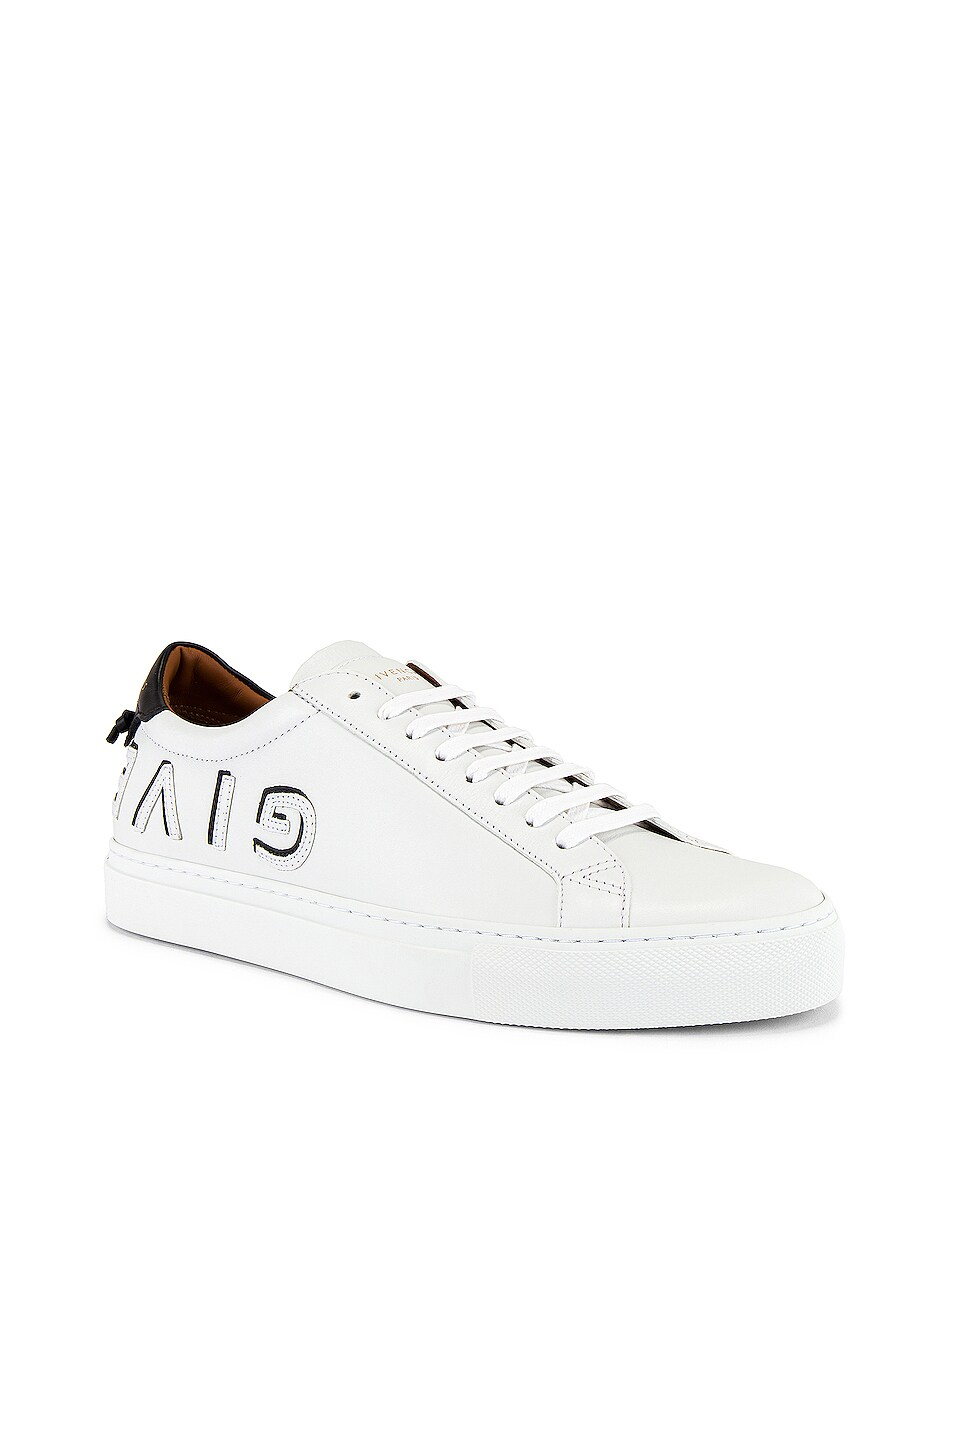 Image 2 of Givenchy Urban Street Sneaker in White & Black